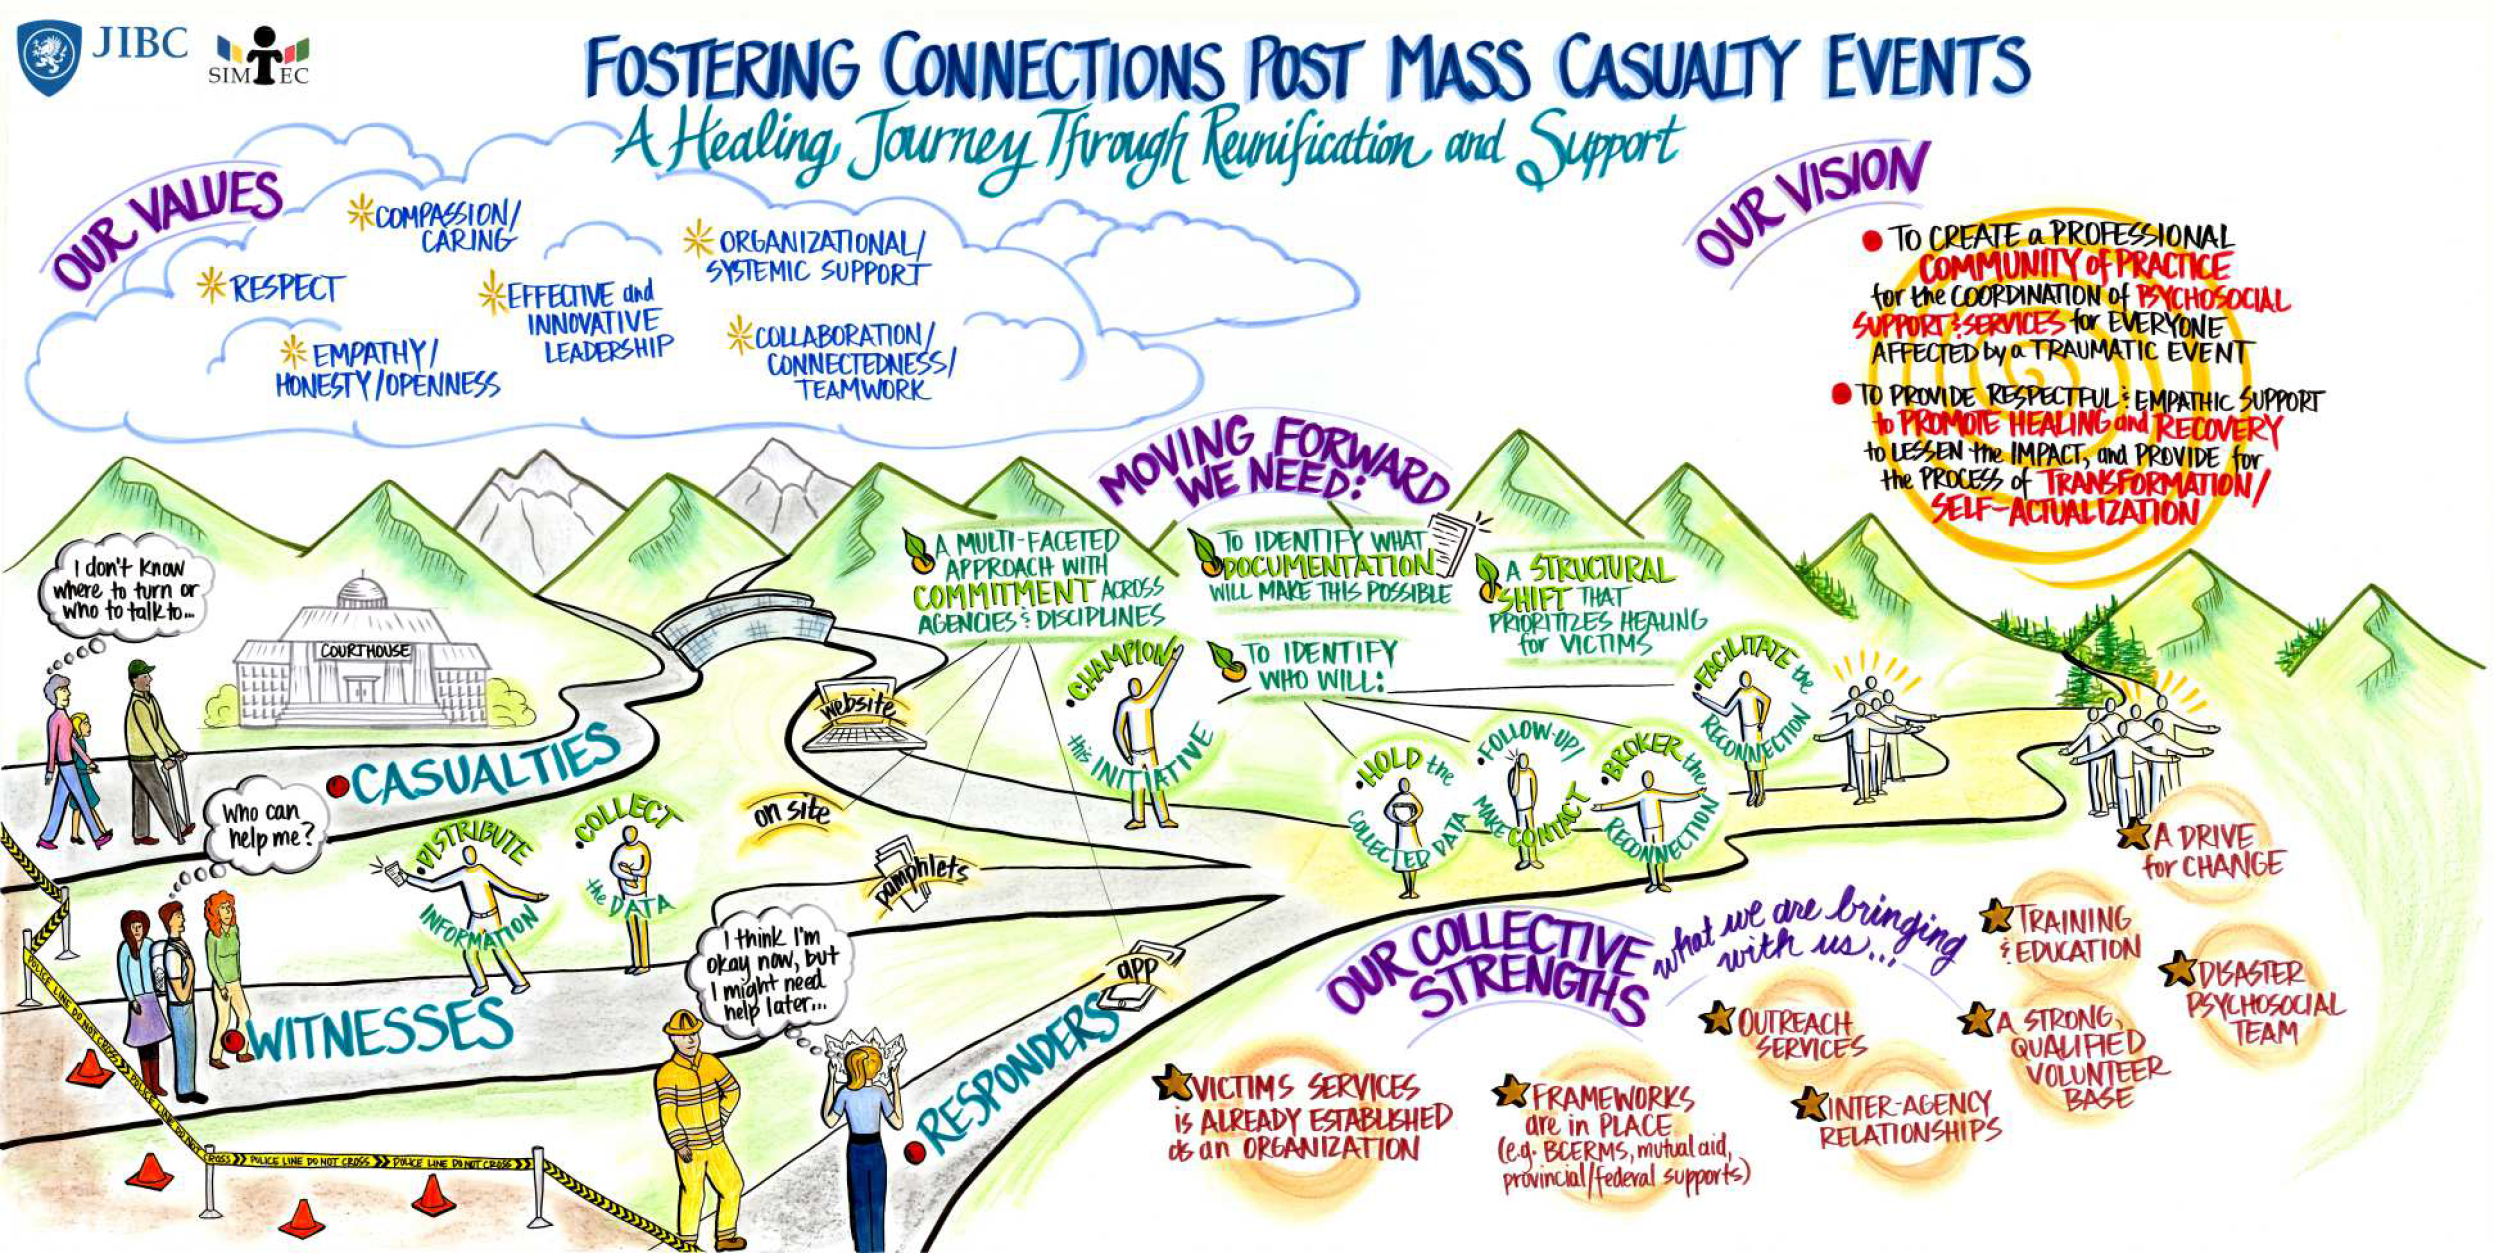 This infographic made by the Justice Institute of British Columbia explains SIMTEC's role in the healing journey following a mass casualty event. It consists of a colorful depiction of an outside scene with roads, grass, and hills in the background, and several subheadings with information.